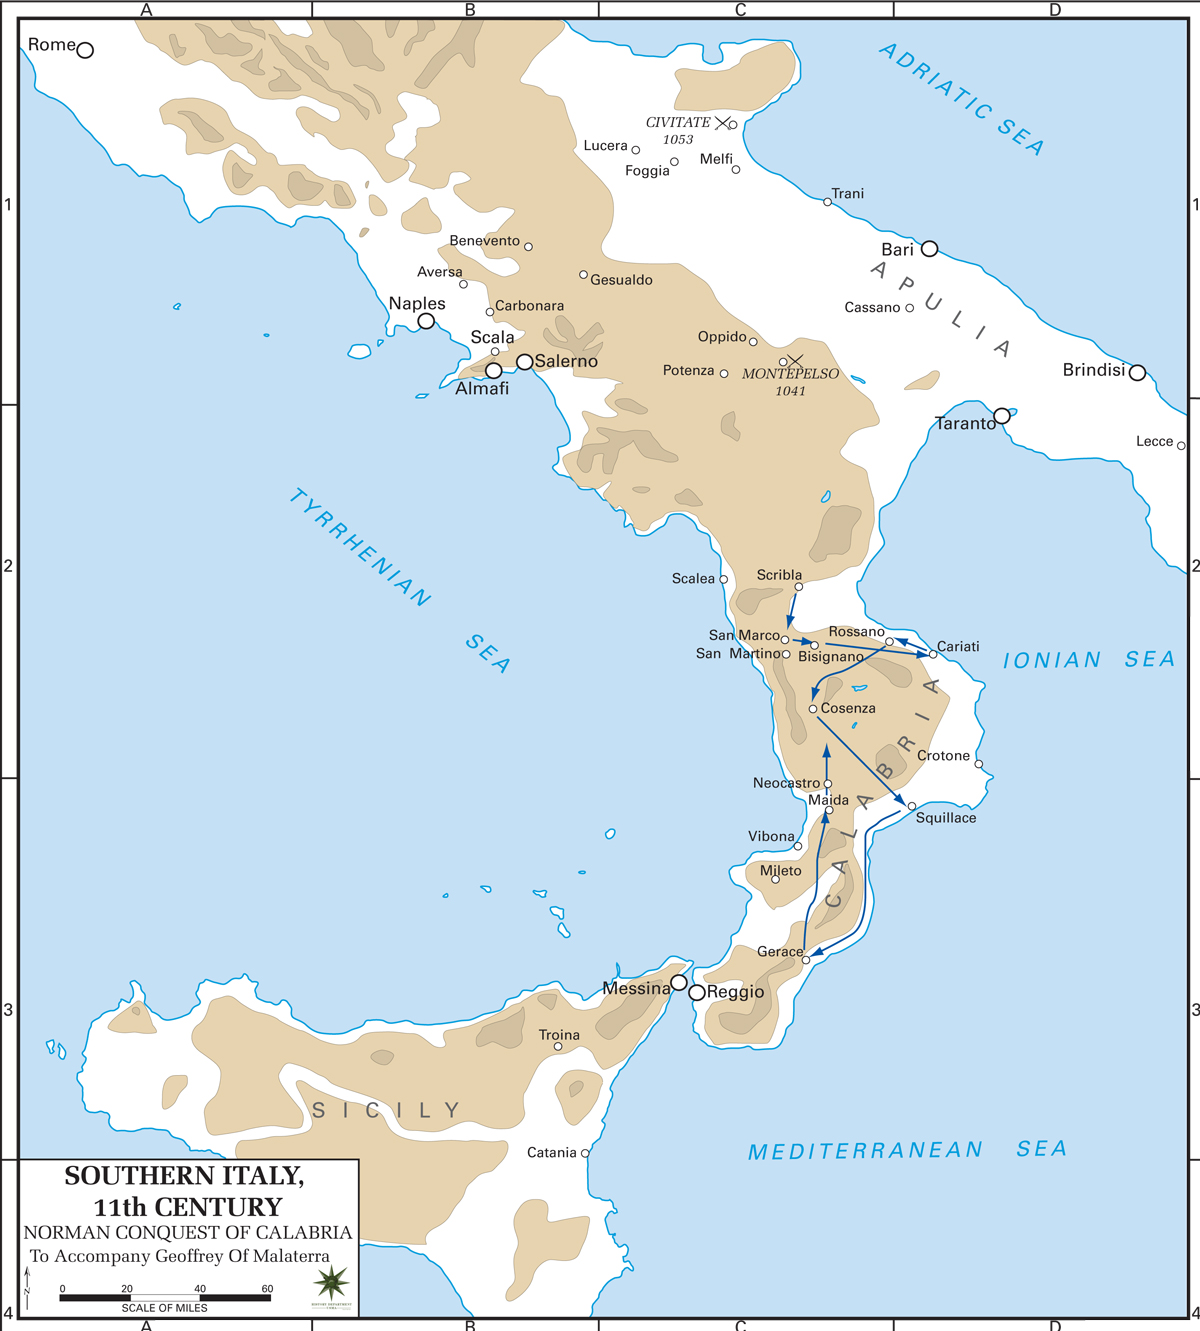 Map Of Southern Italy 11th Century